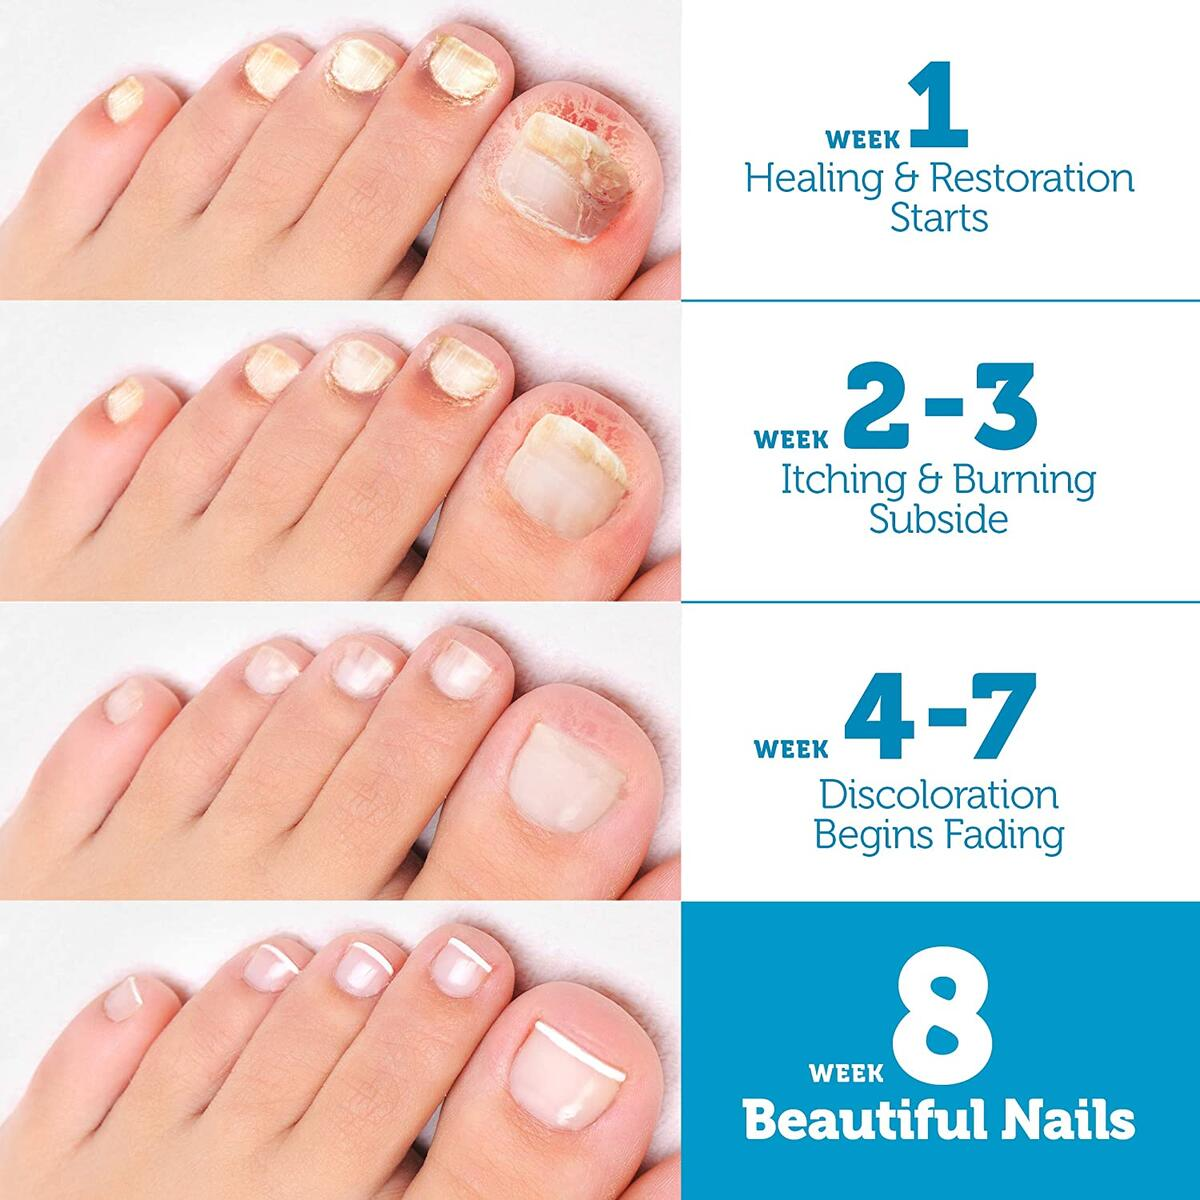 Finger & Toenail Fungus Treatment Pens (4 Pack), Nail Fungus Treatment for Toenail Restoration, Toe Fungus Nail Treatment Extra Strength contains Undecylenic Acid for Nail Repair